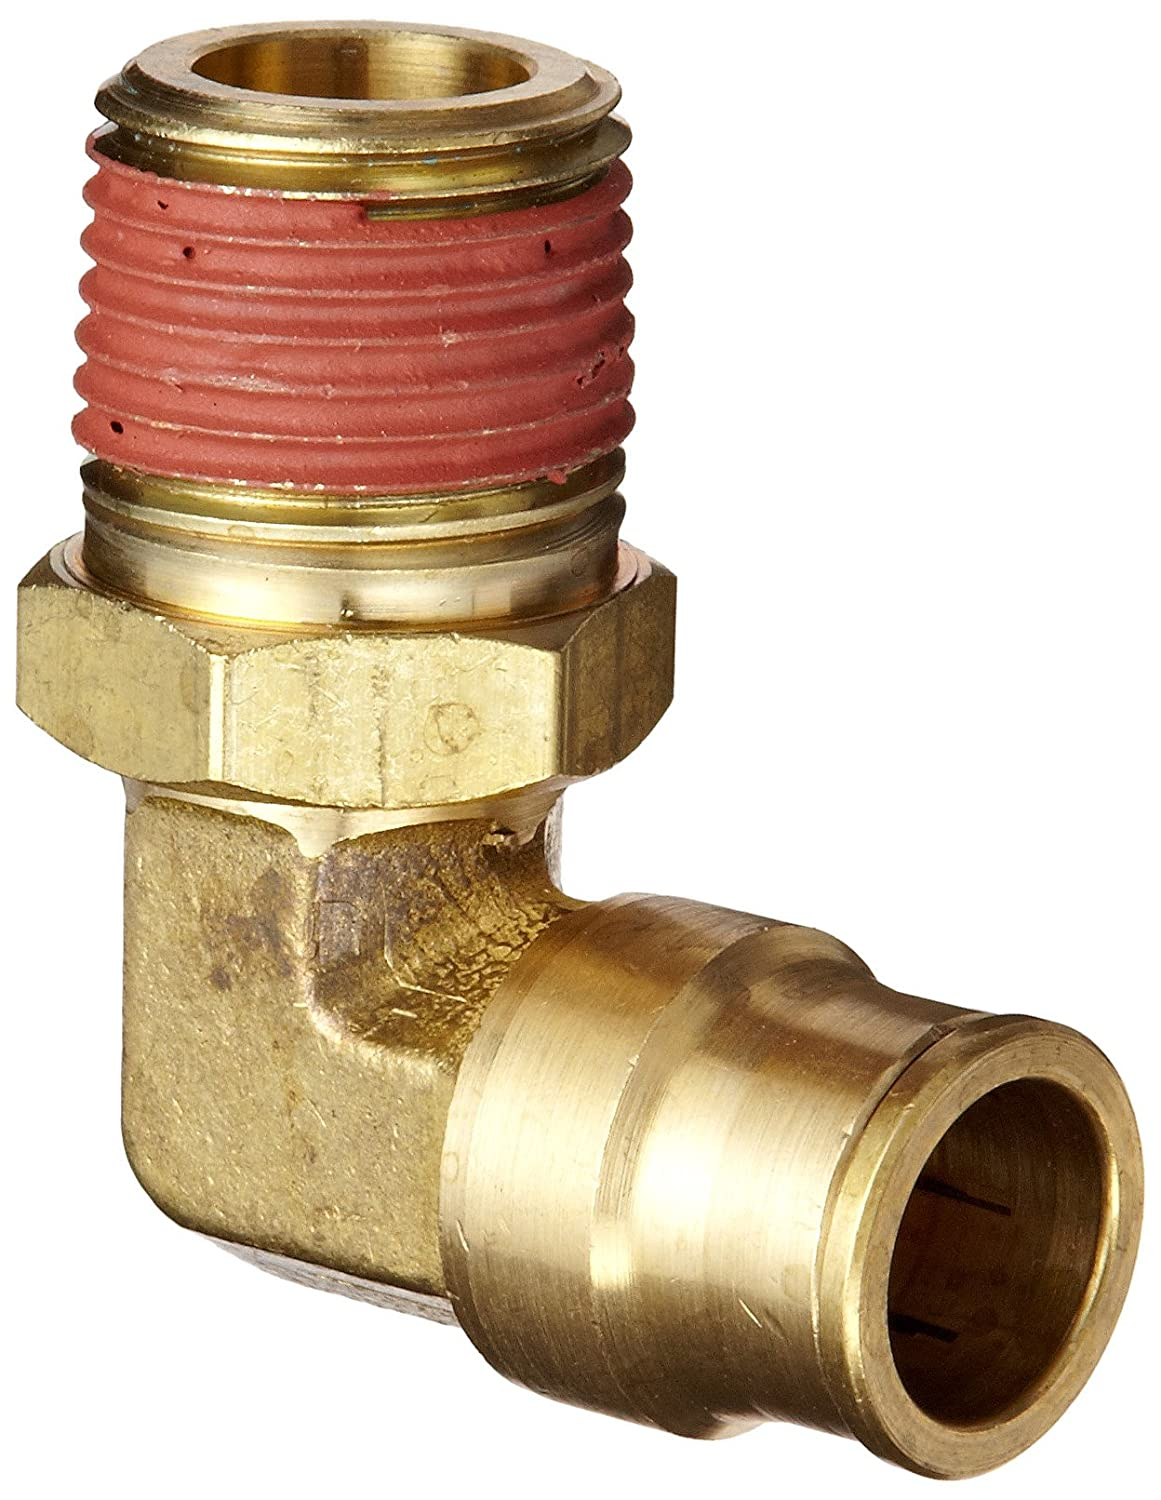 Swivel Elbow Dixon 69S8X4 Forged Brass Push-to-Connect Air Tube Fitting 1//4 Tube OD x 1//8 NPTF Male 1//4 Tube OD x 1//8 NPTF Male Dixon Valve /& Coupling